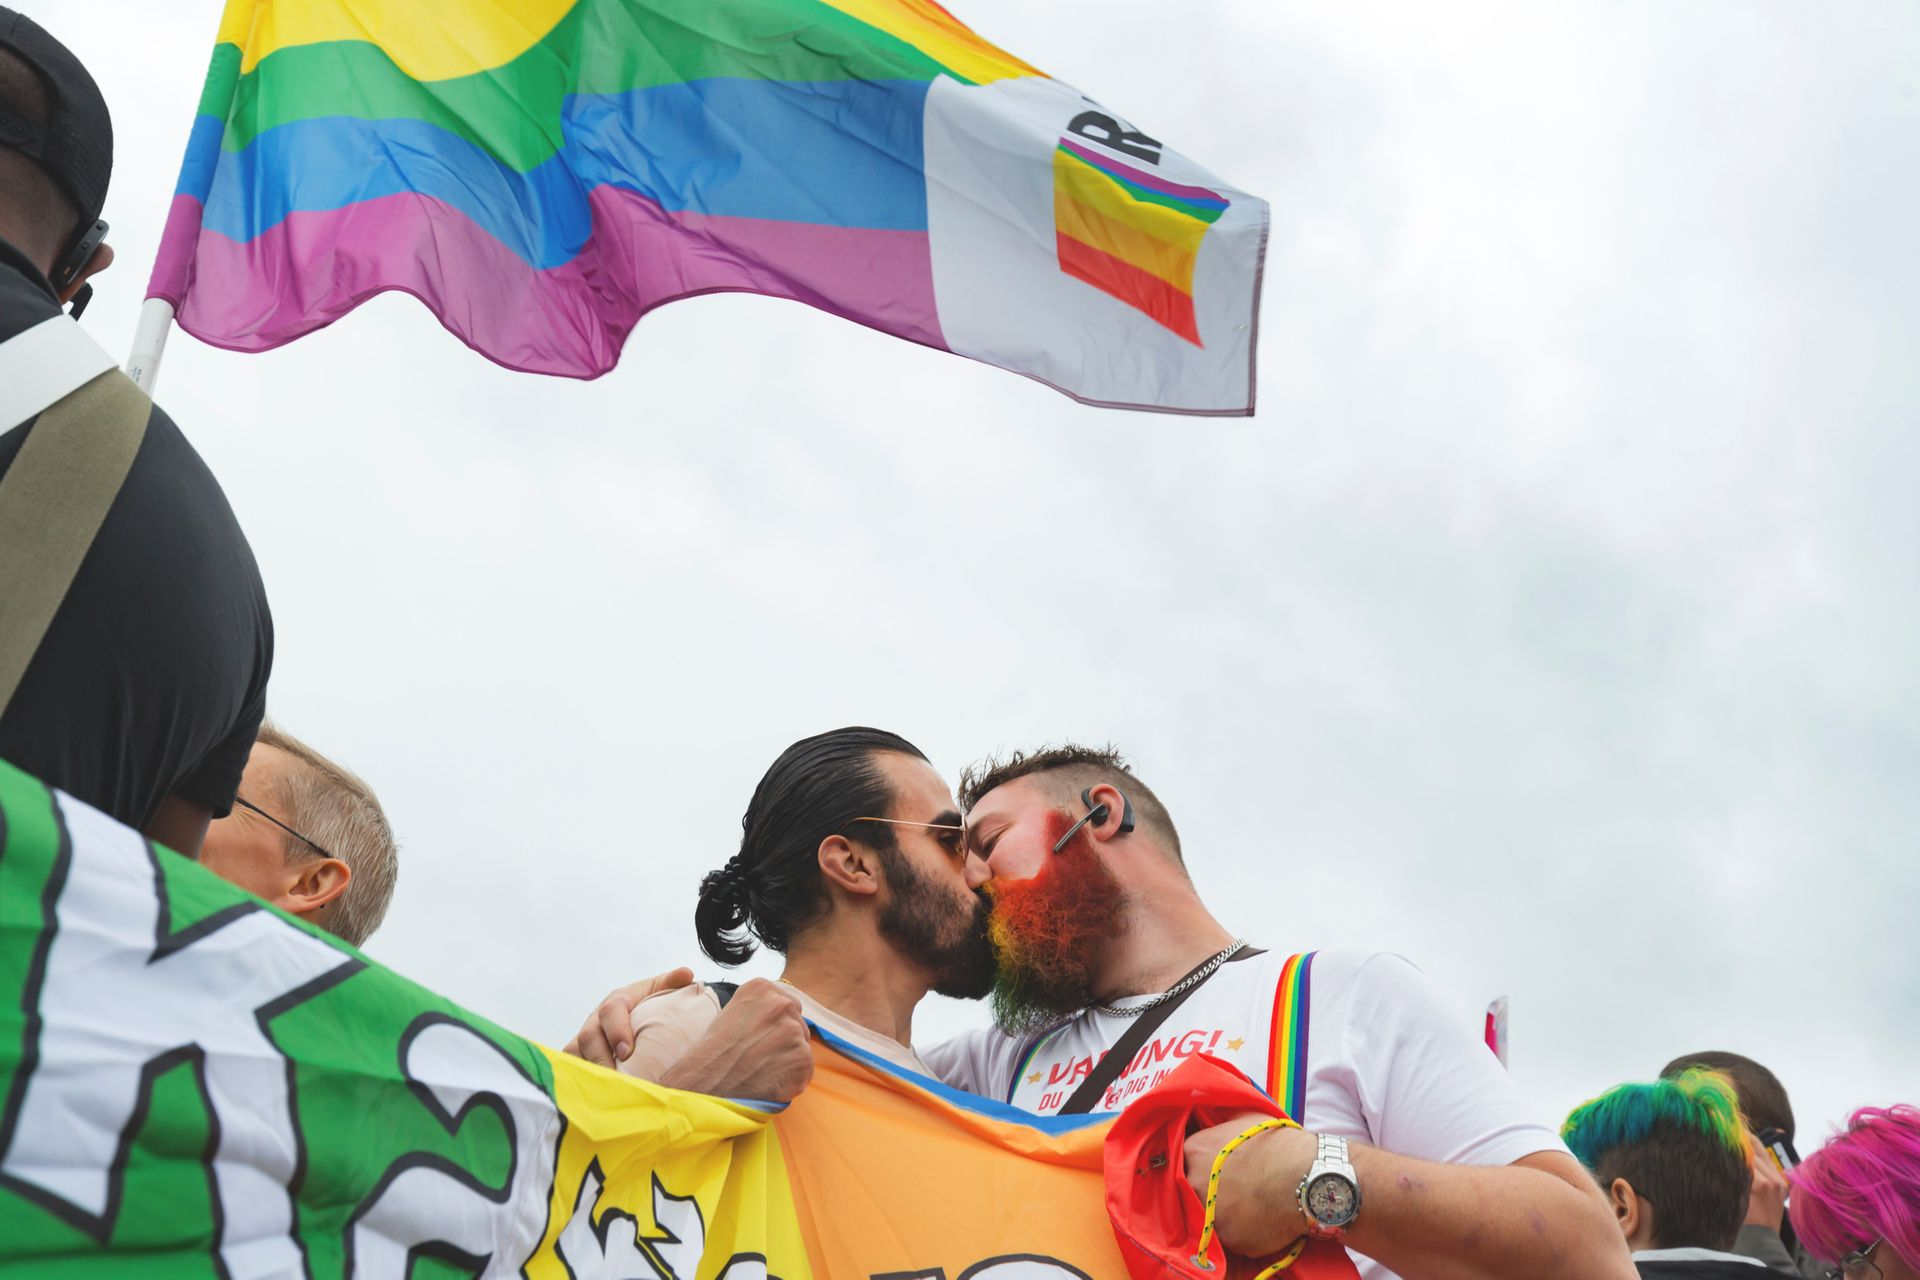 Two men kissing. They are holding a Pride flag and another Pride flag is waving beside them.